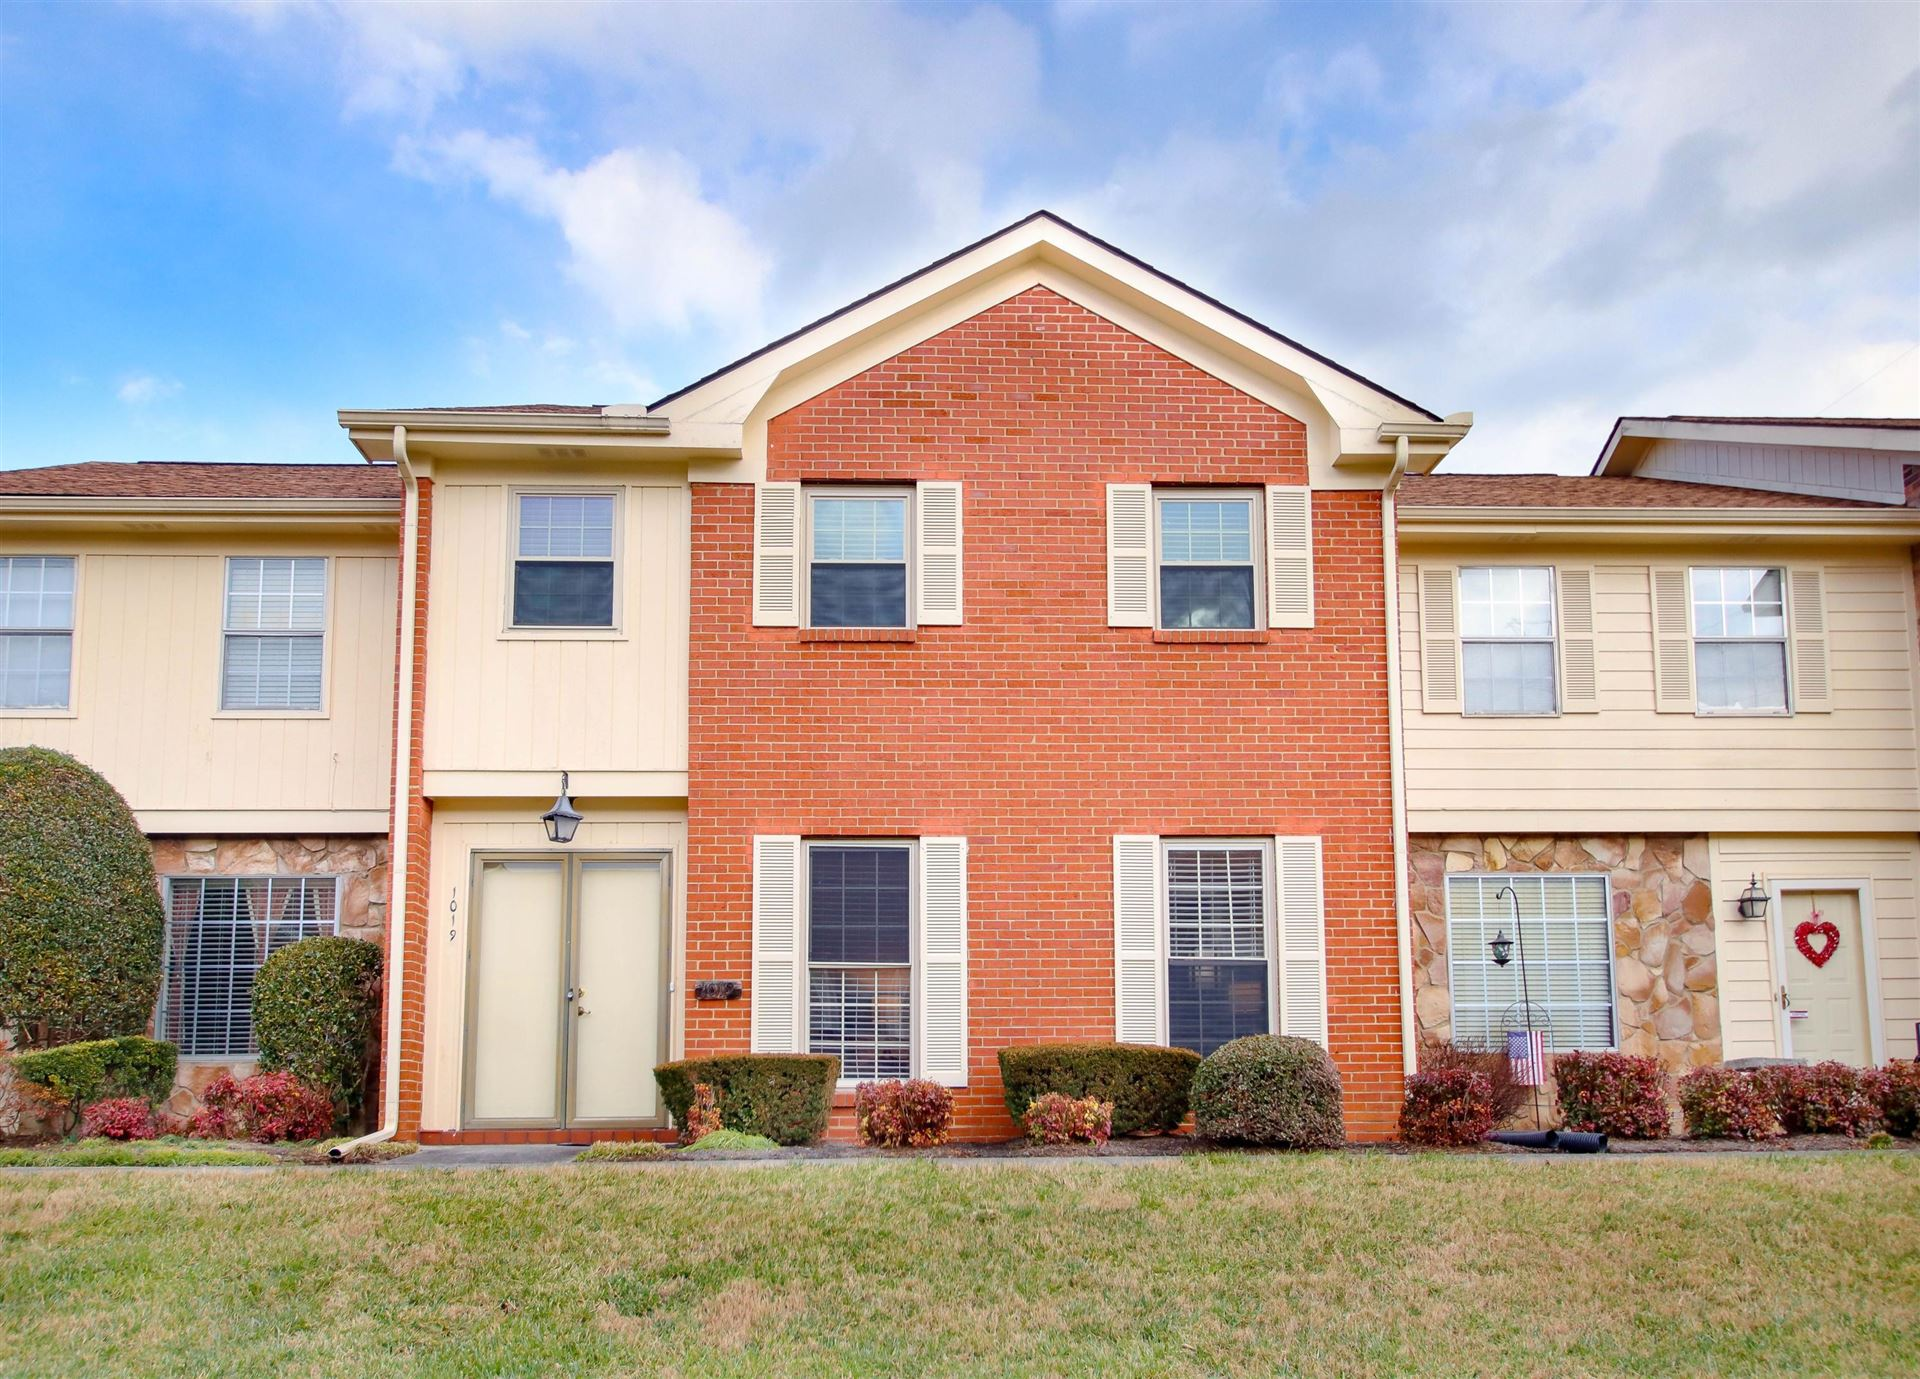 Photo of 7914 Gleason Drive # 1019, Knoxville, TN 37919 (MLS # 1140210)